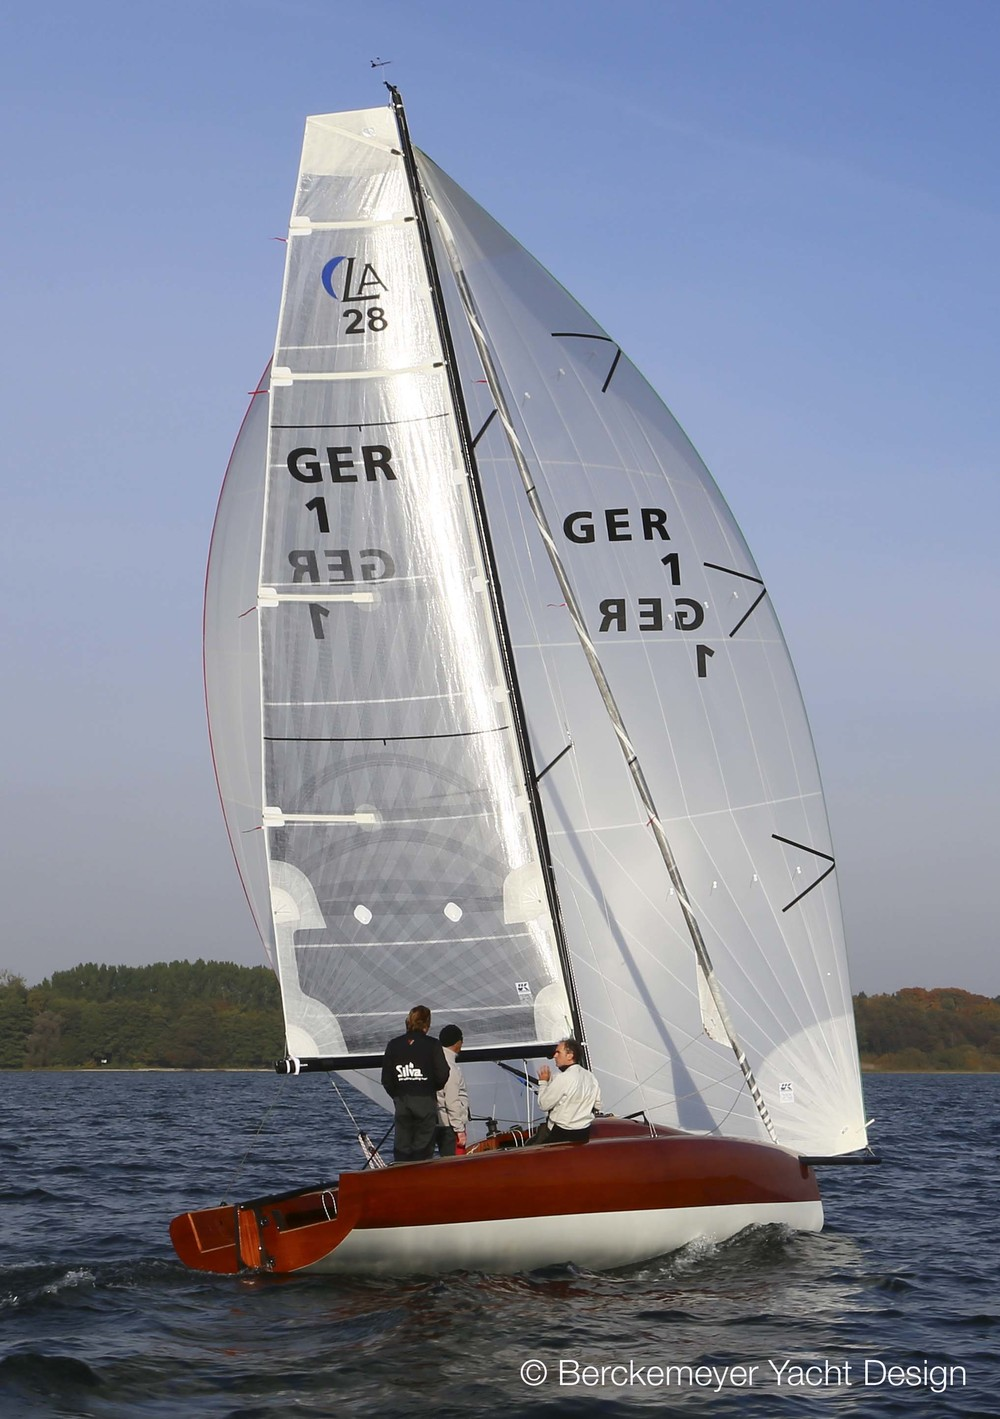 A Square-Top X-Drive mainsail on a 28-foot daysailer designed by Berkemeyer Yacht Design.